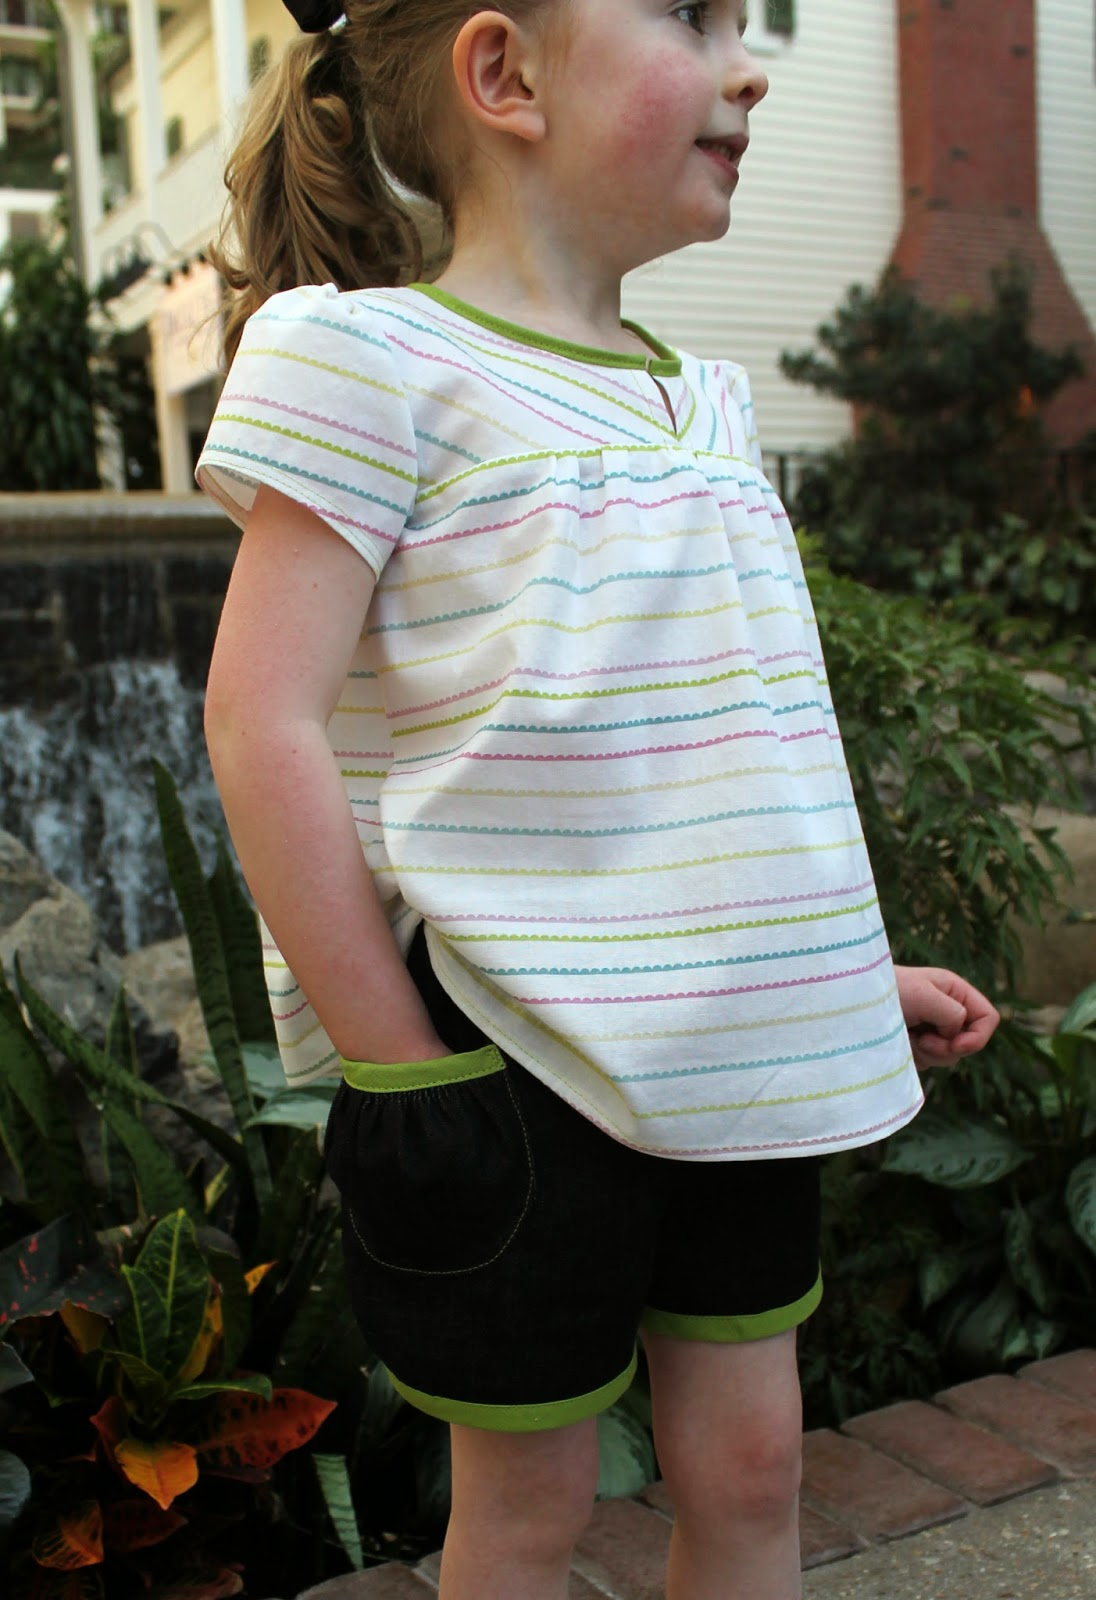 """Mix and match children's separates sewn as solution to Project Run & Play Season 9's Week 2 """"Spring Break"""" Challenge. 